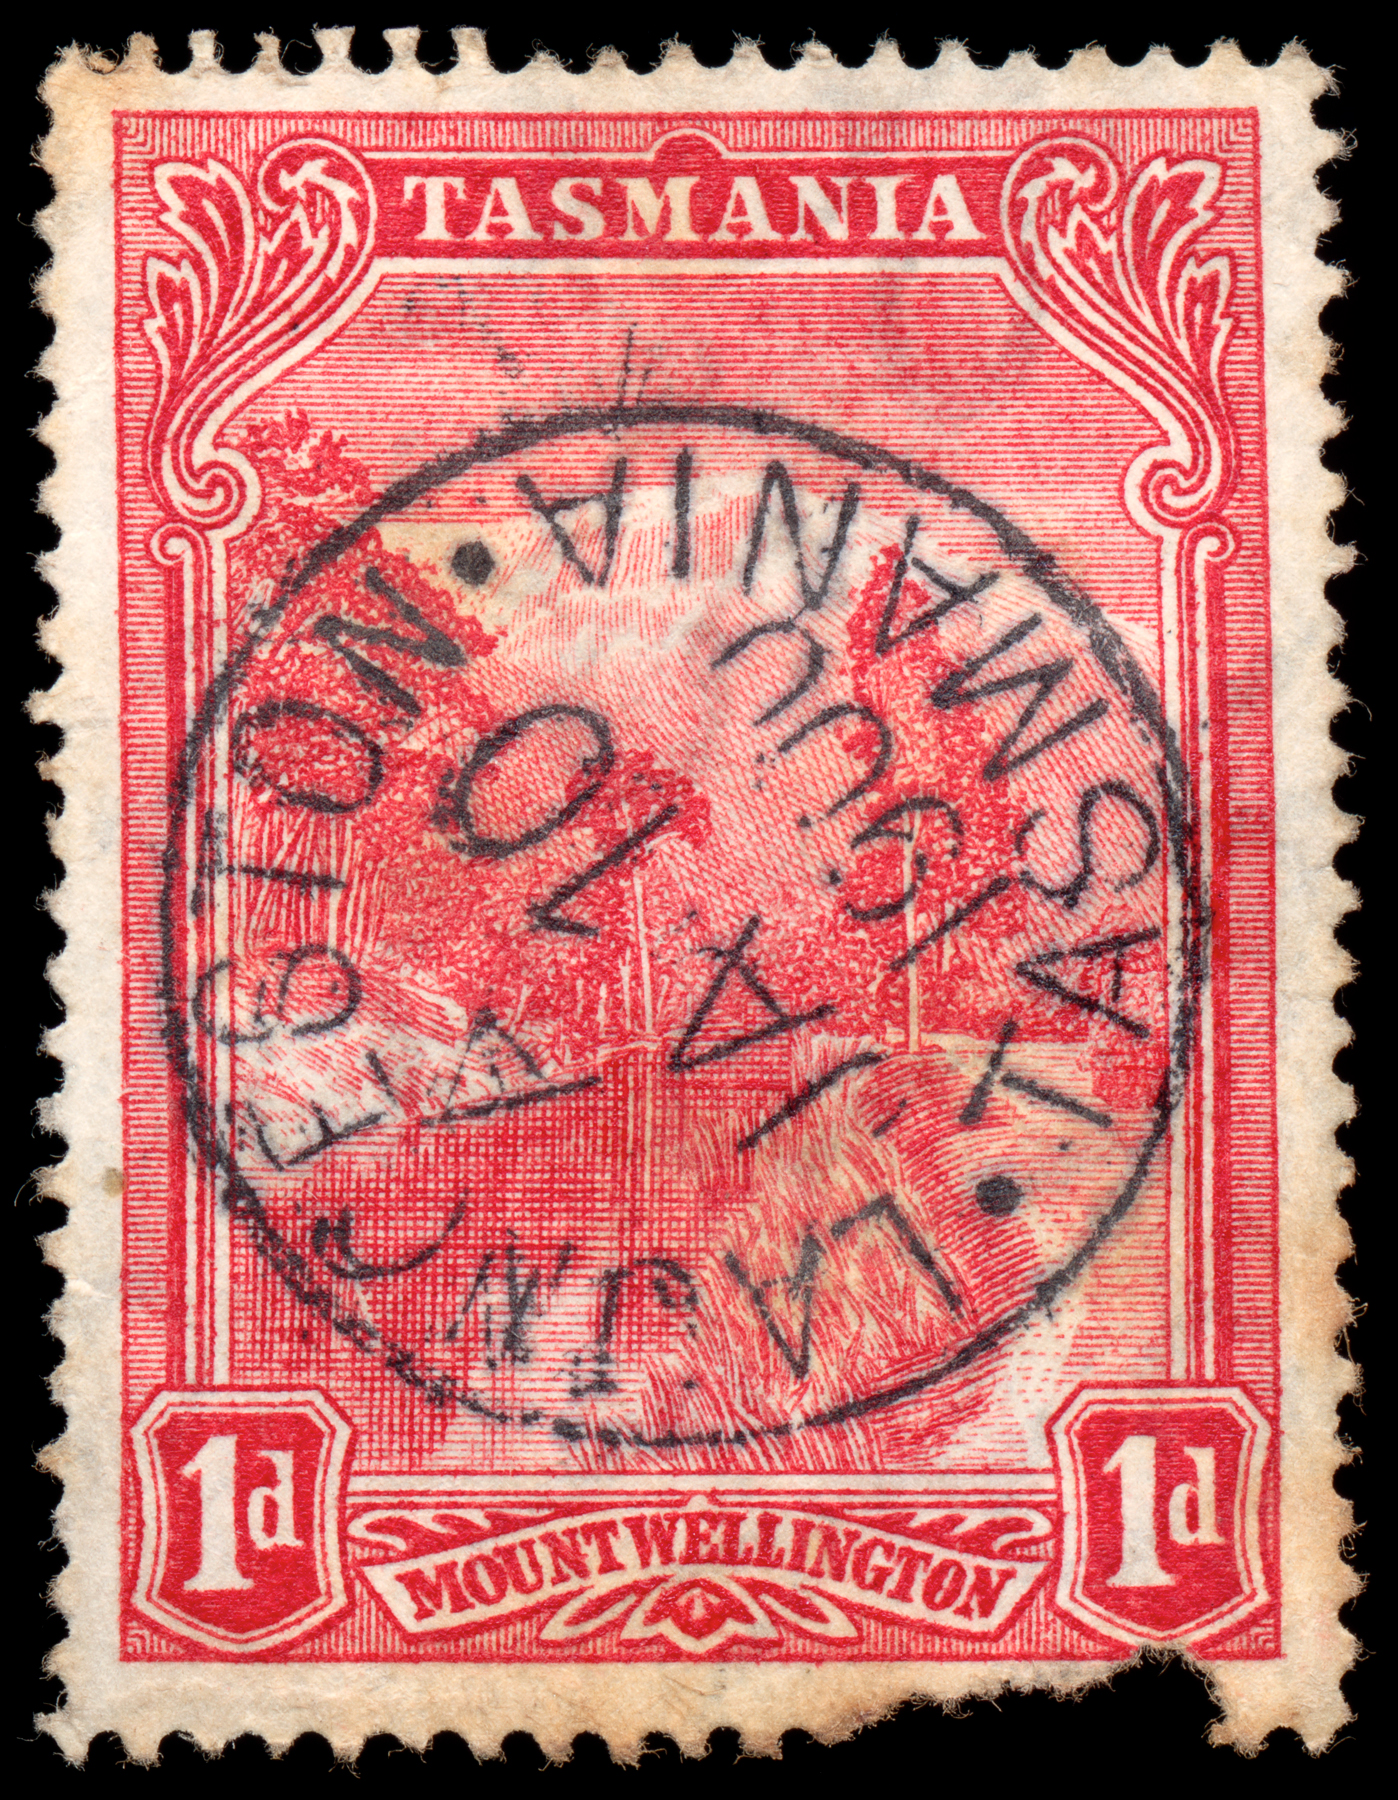 Red mount wellington stamp photo